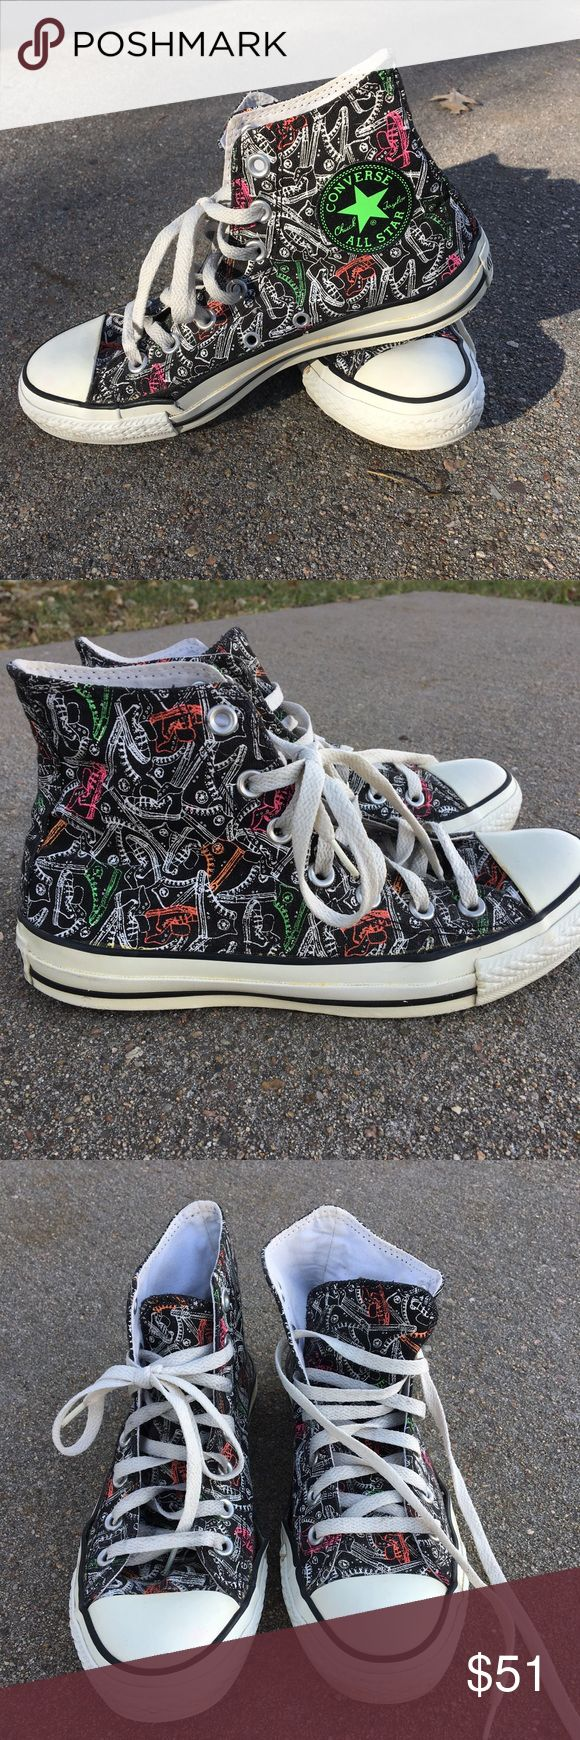 Converse Hard To Find Black & Neon Converse, hard to find style, Black high tops with white & neon Converse print. The only issue that I can see is a split on the inside of each shoe approx. where your big toe starts(as shown on the last pic). Size 8 women's & 6 men's.  🚭Smoke Free Home Converse Shoes